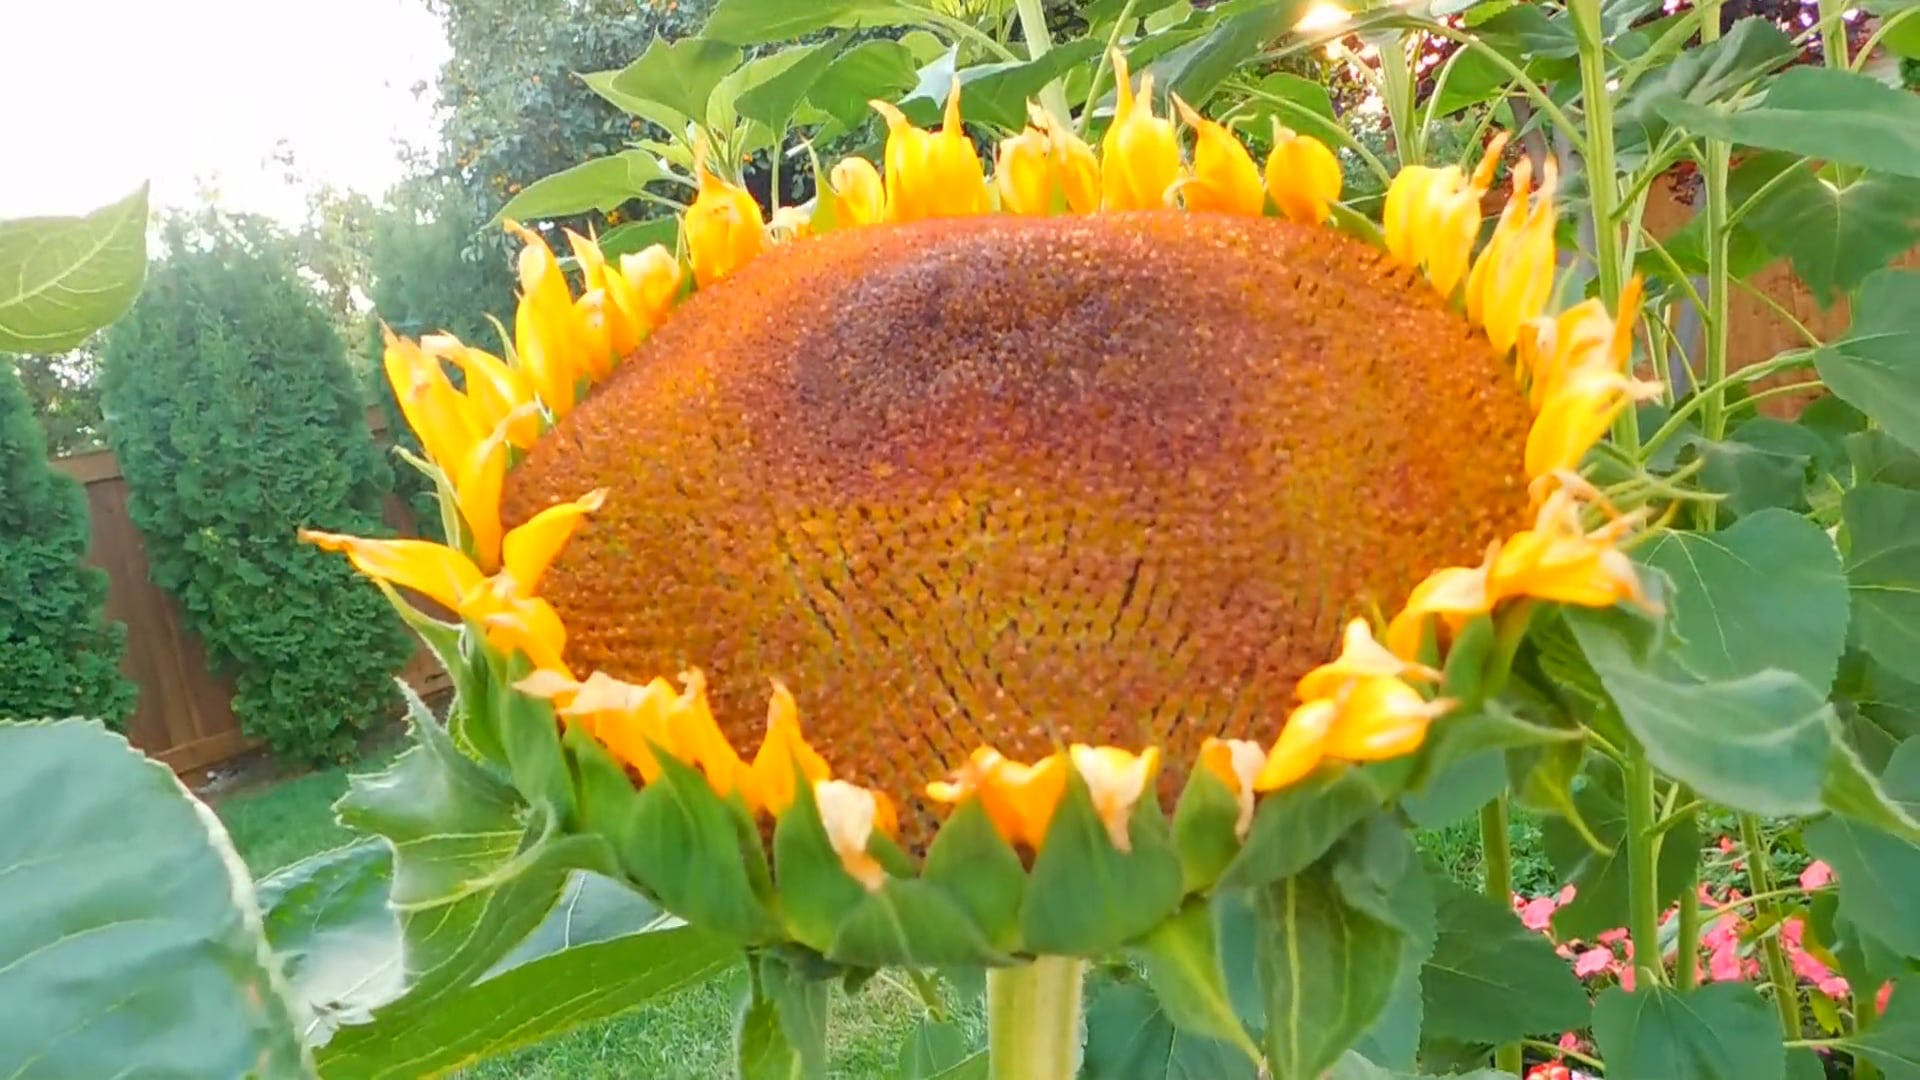 The Sunflower At The End Of Bloom